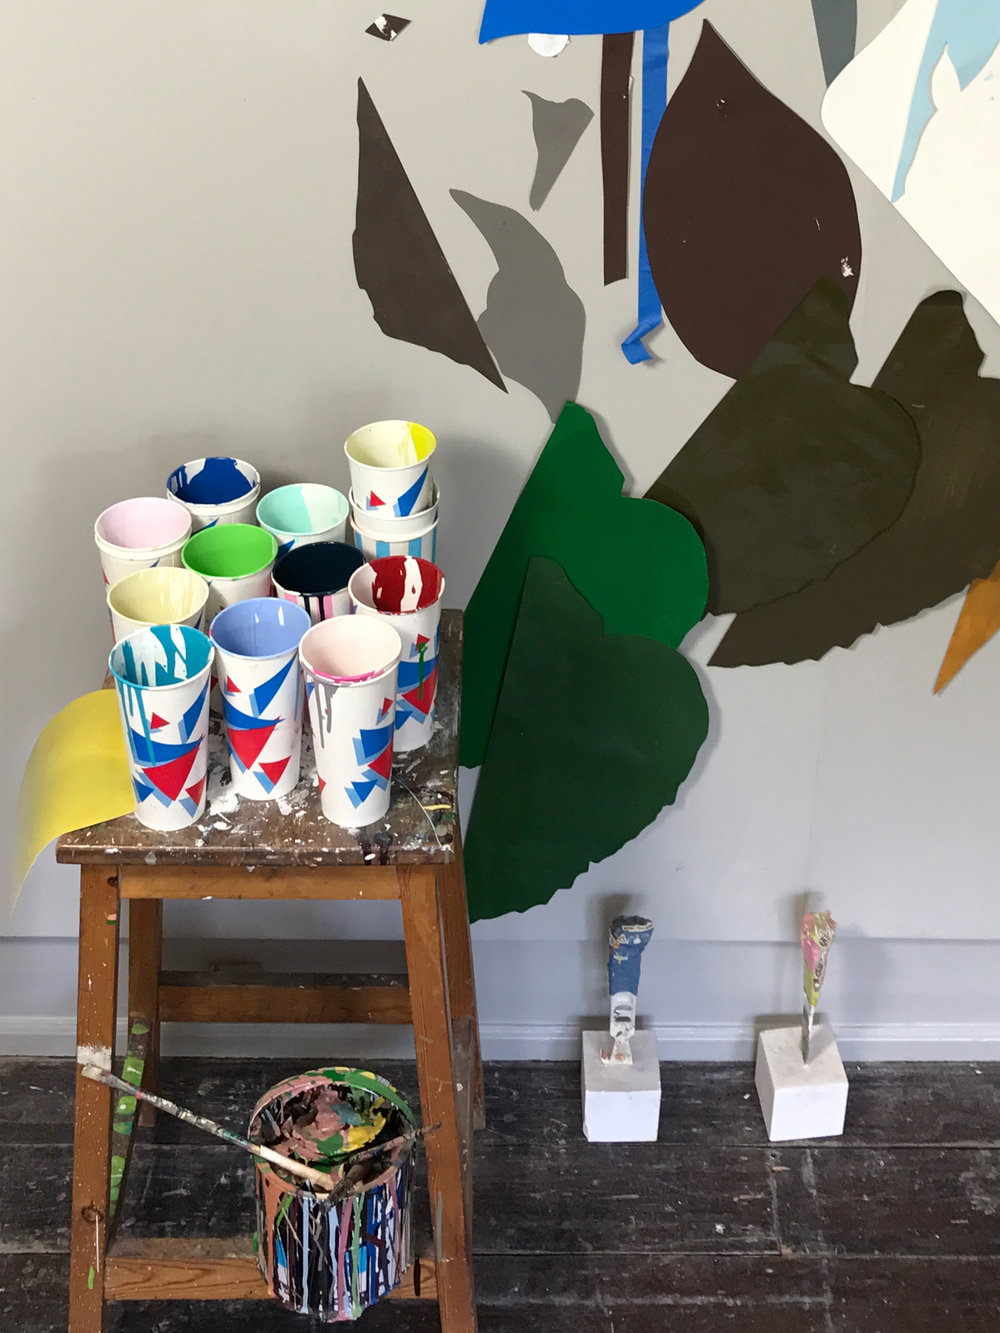 Gary Hume: Artist's stool, collection of waxed cups containing high gloss household paint, paper stencils, old tin of discarded high gloss paint, used painting spatulas set in plaster.